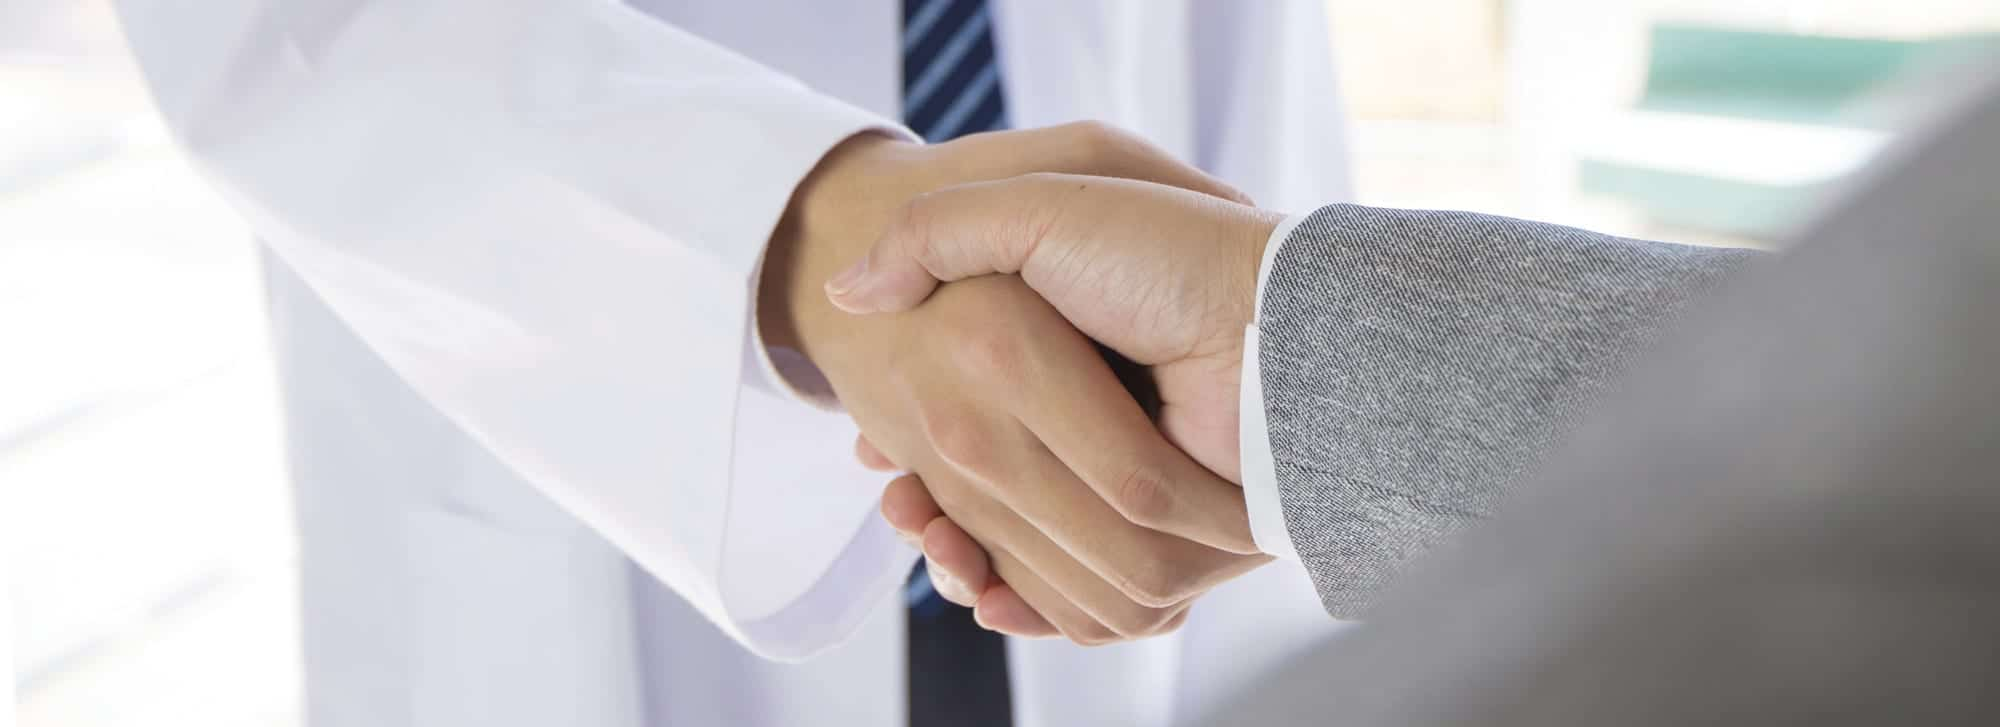 Medical professional and sales representative shaking hands